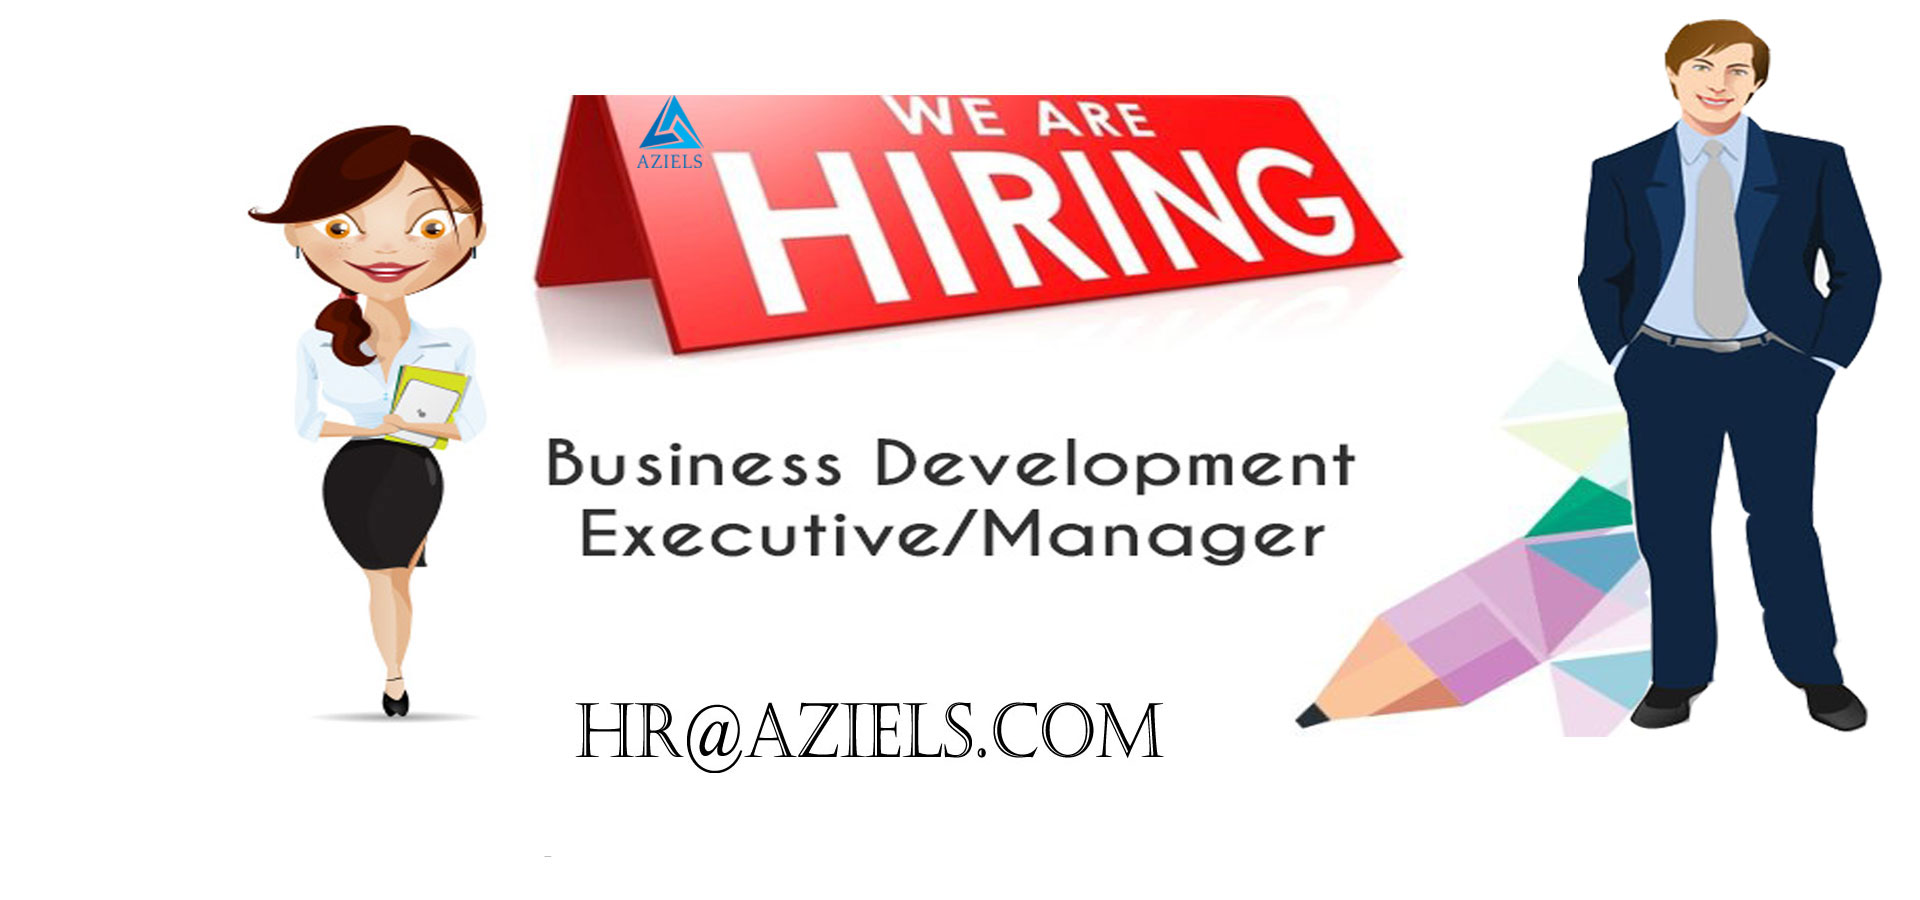 Bde Job In Delhi Business Development Executive